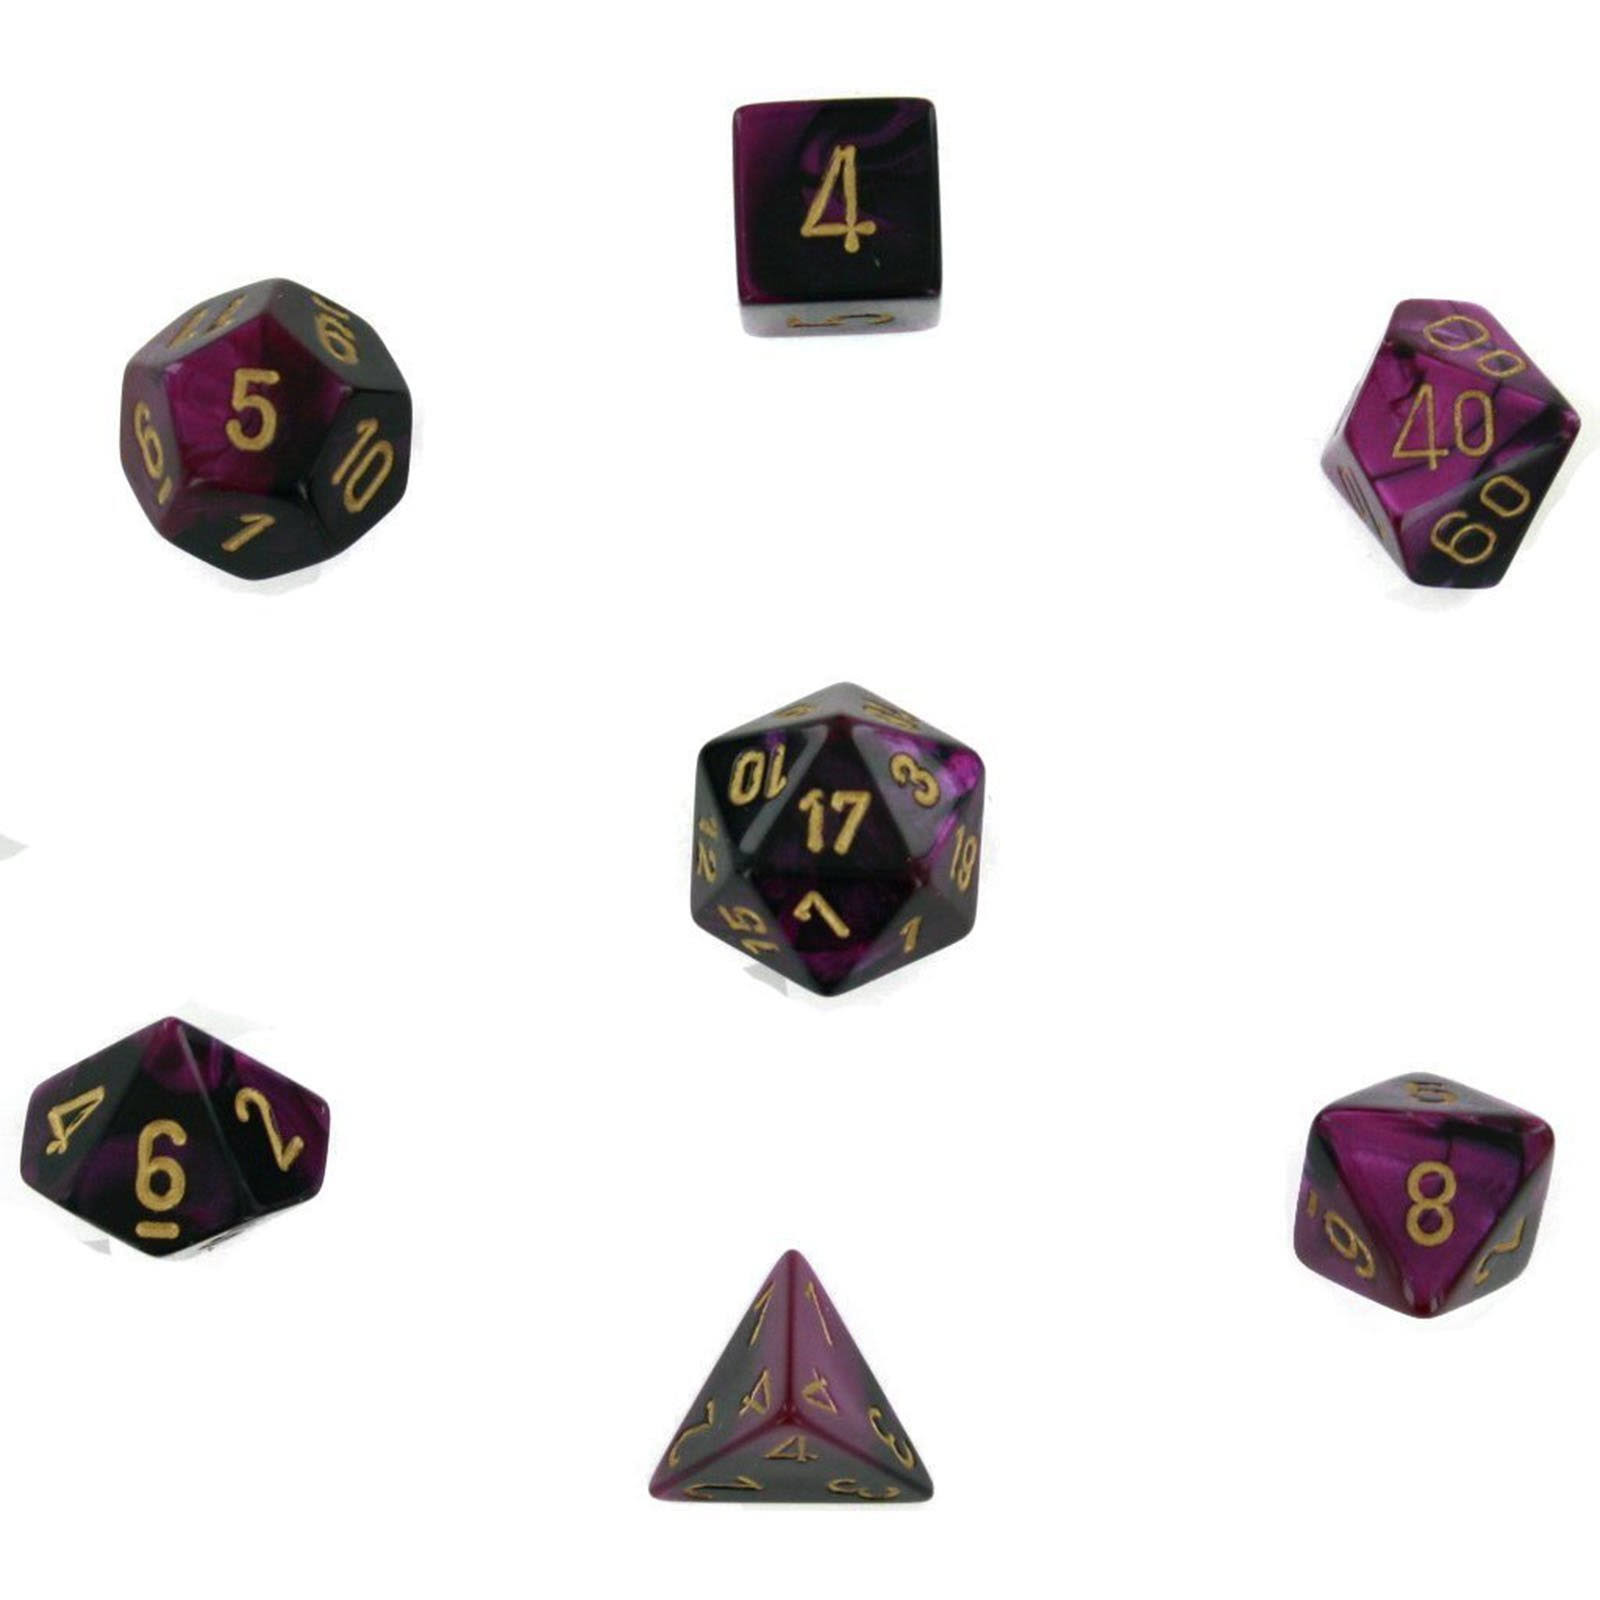 Chessex Die Set - Black, Purple and Gold